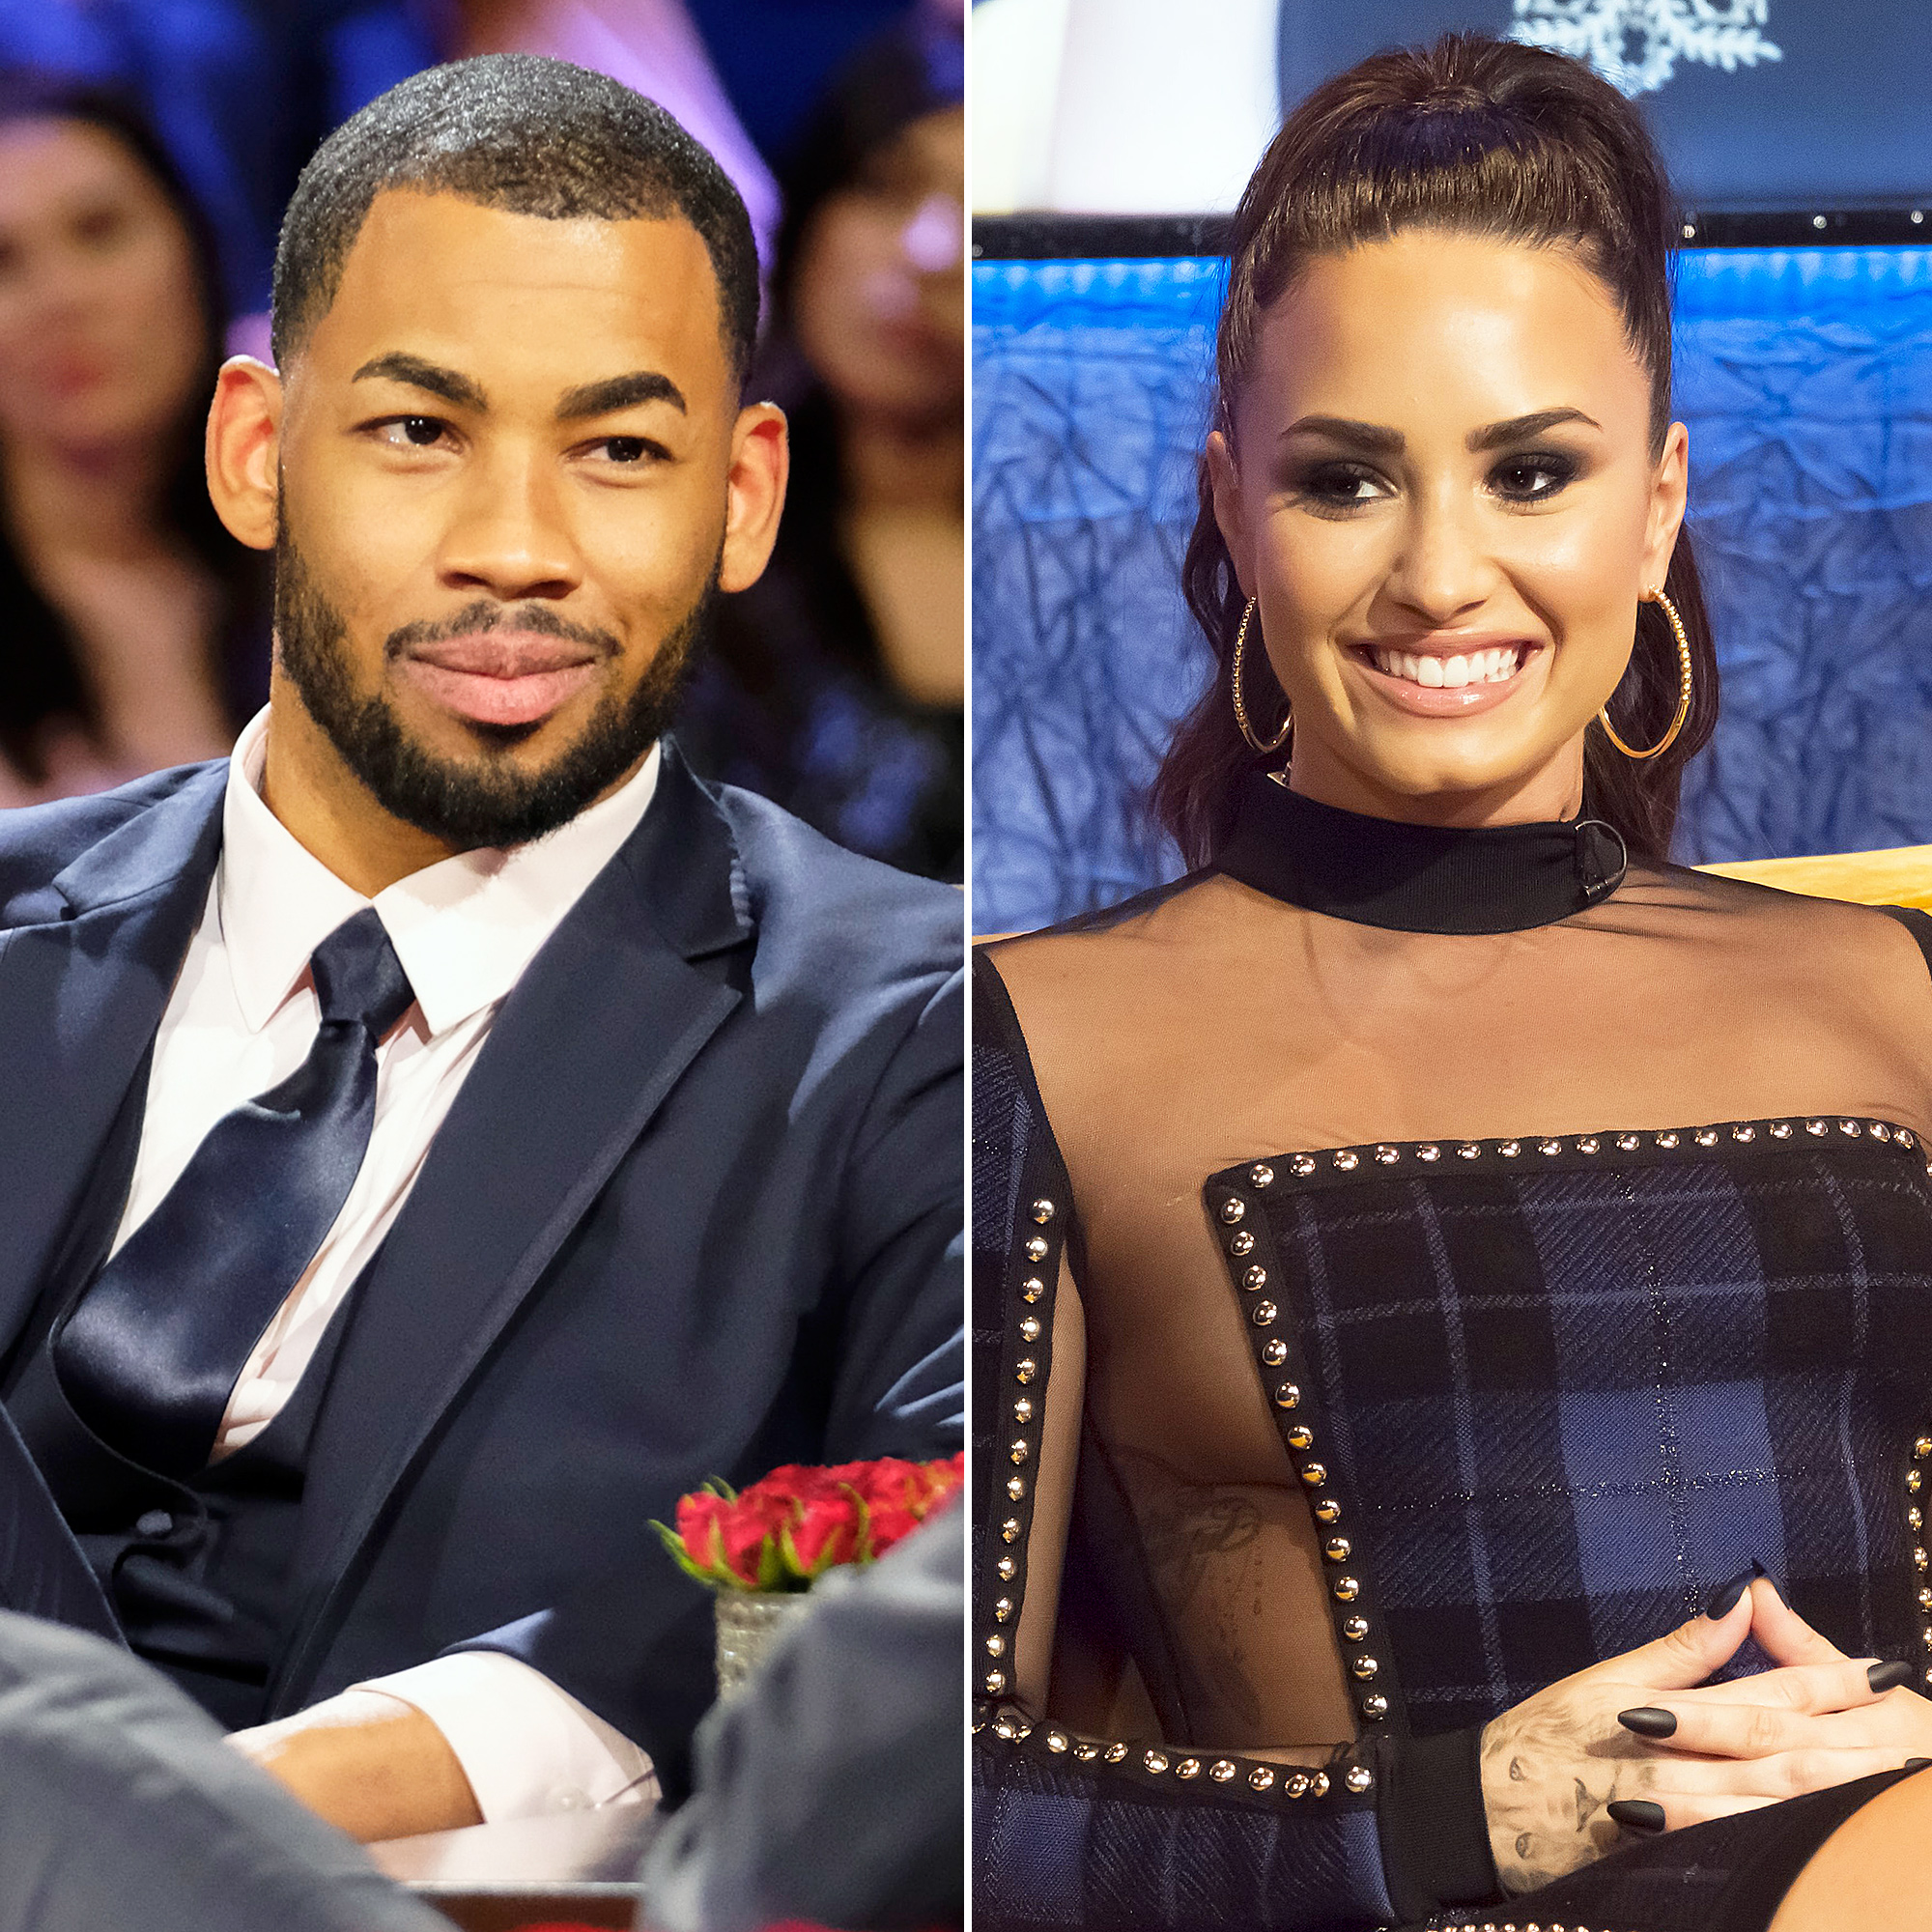 Bachelor in Paradise Mike Johnson Reveals What He Has in Common With Demi Lovato